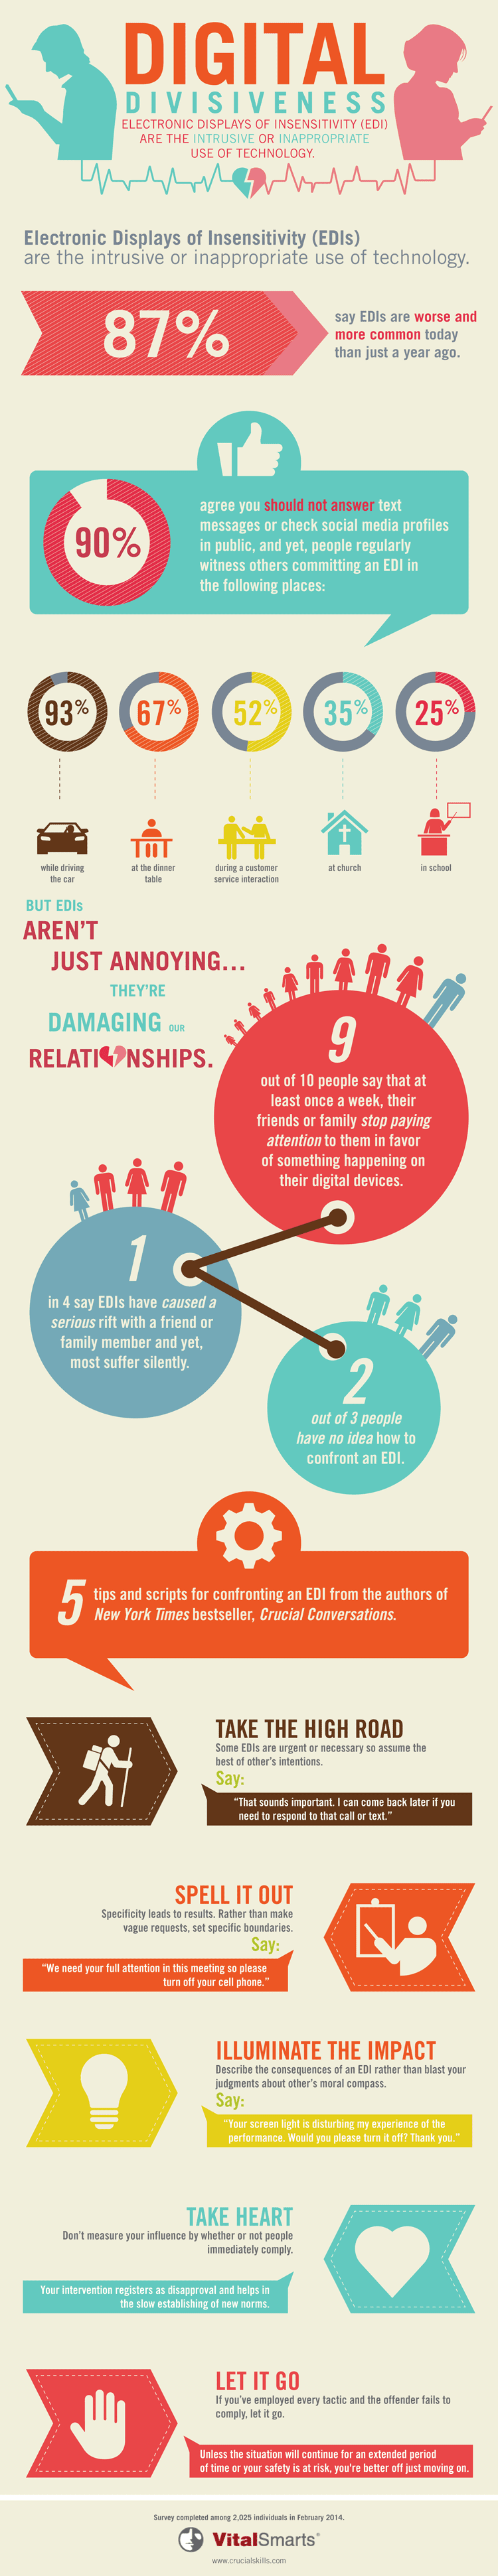 Digital Divisiveness: Electronic Displays of Insensitivity Take Toll on Relationships - infographic